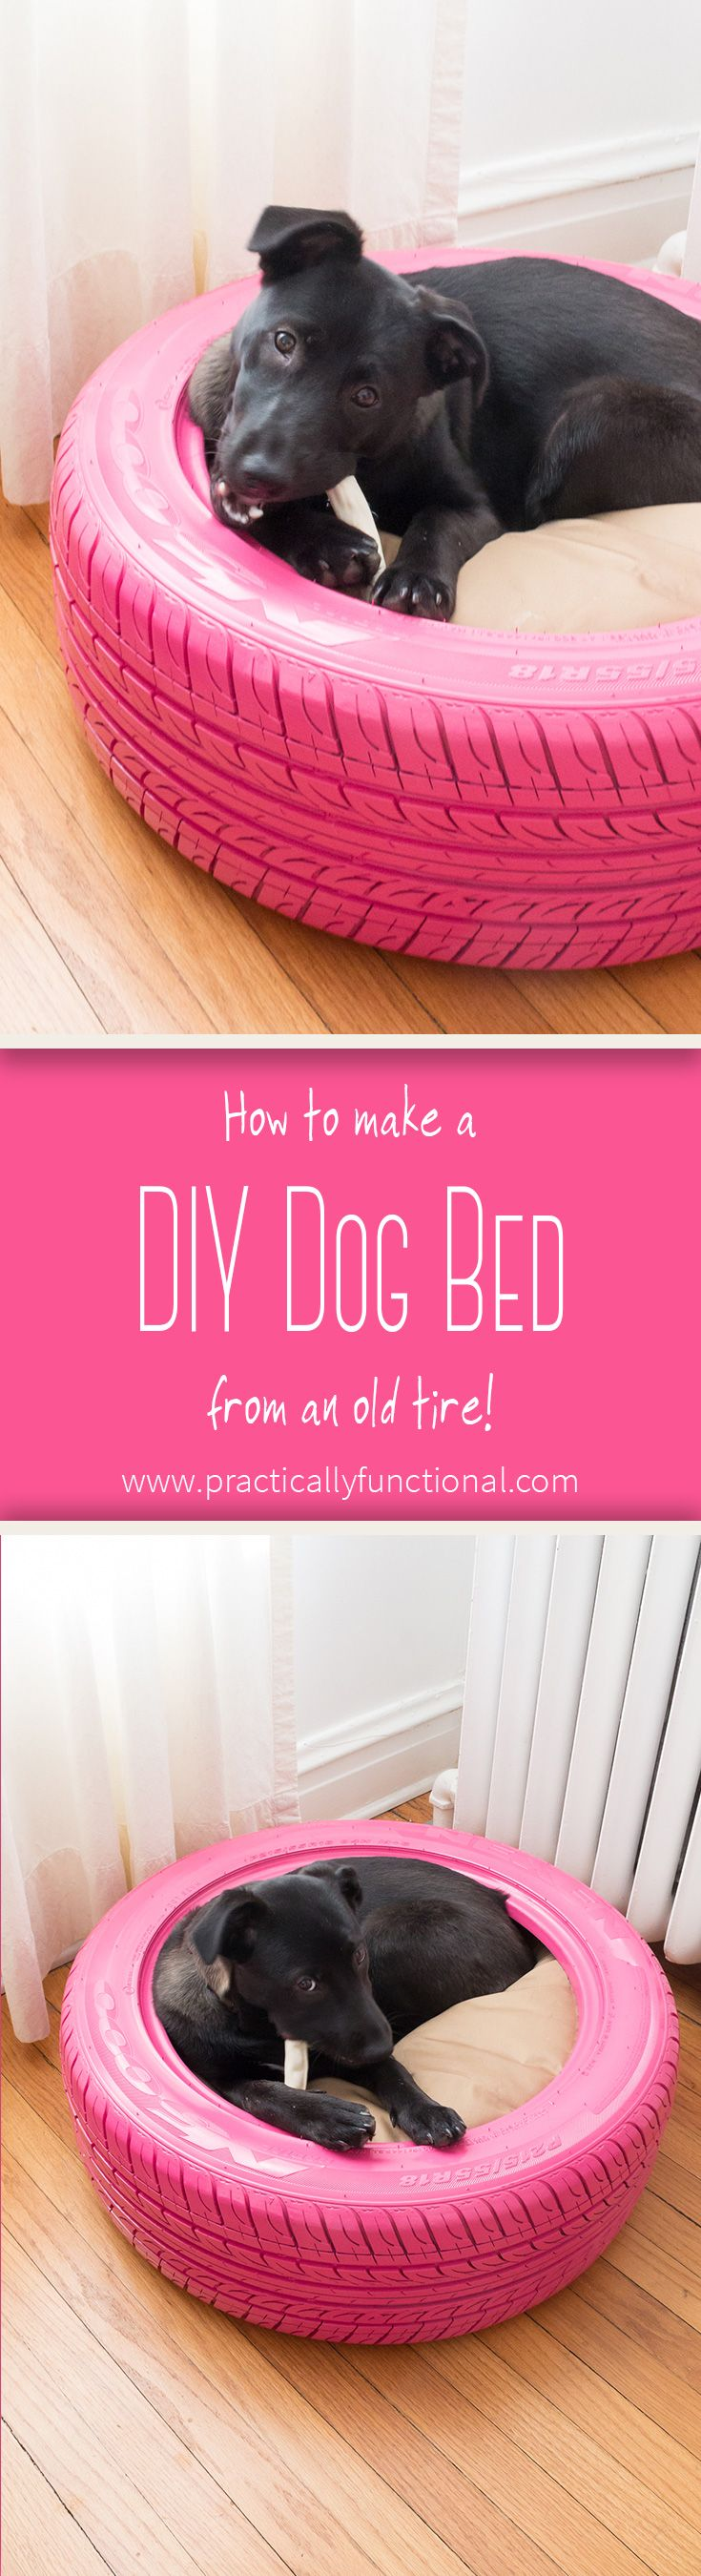 DIY Dog Bed From A Recycled Tire! Diy dog bed, Dog bed, Dogs